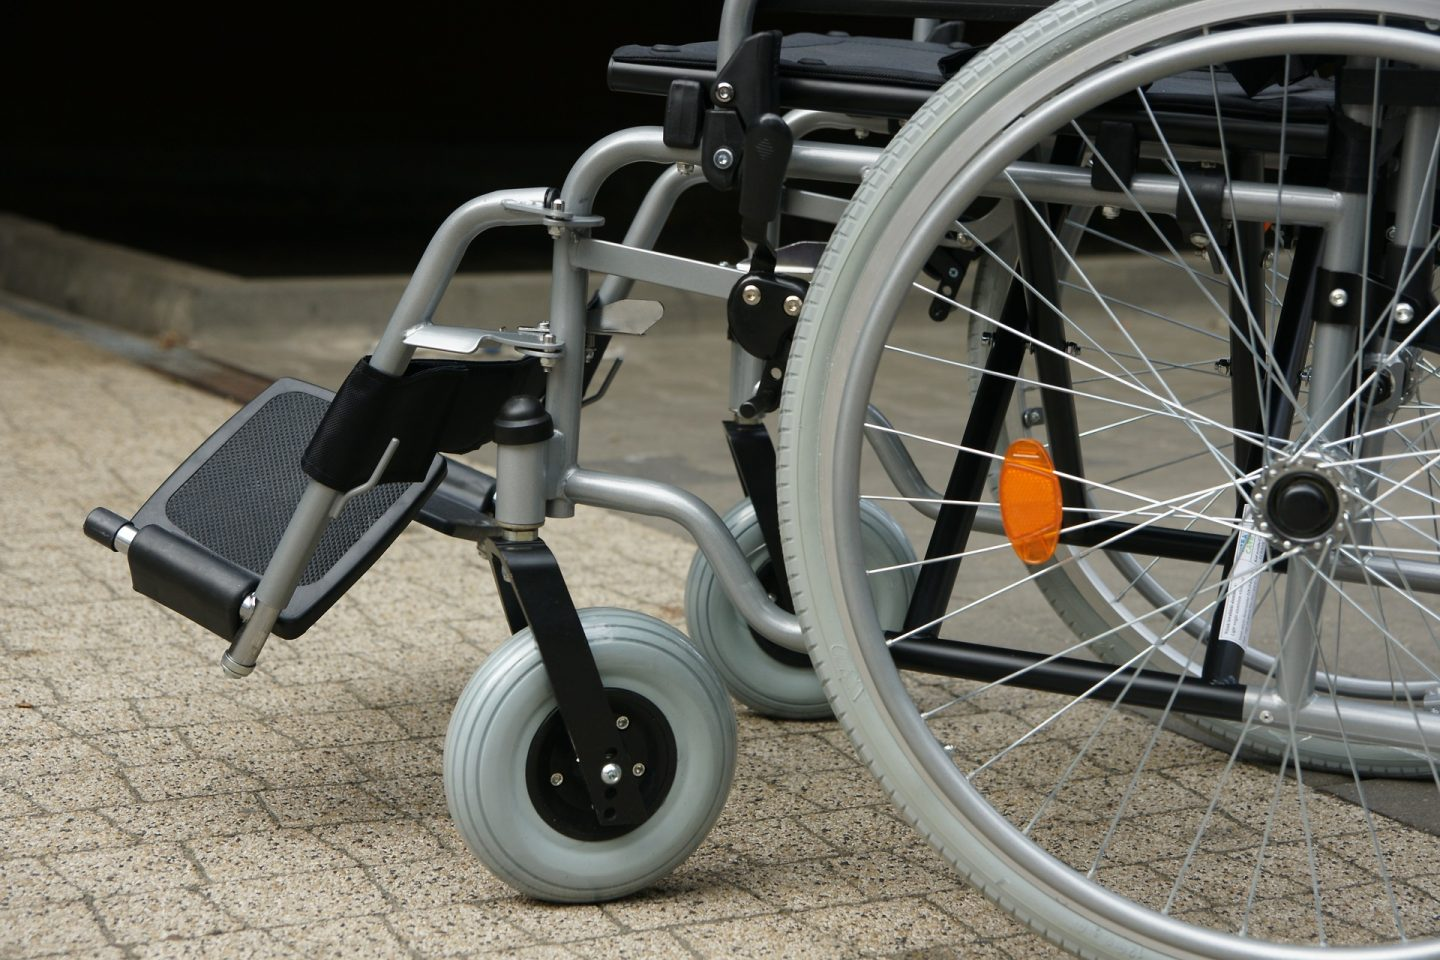 5 HELPFUL WAYS TO AID THE DIFFERENTLY-ABLED